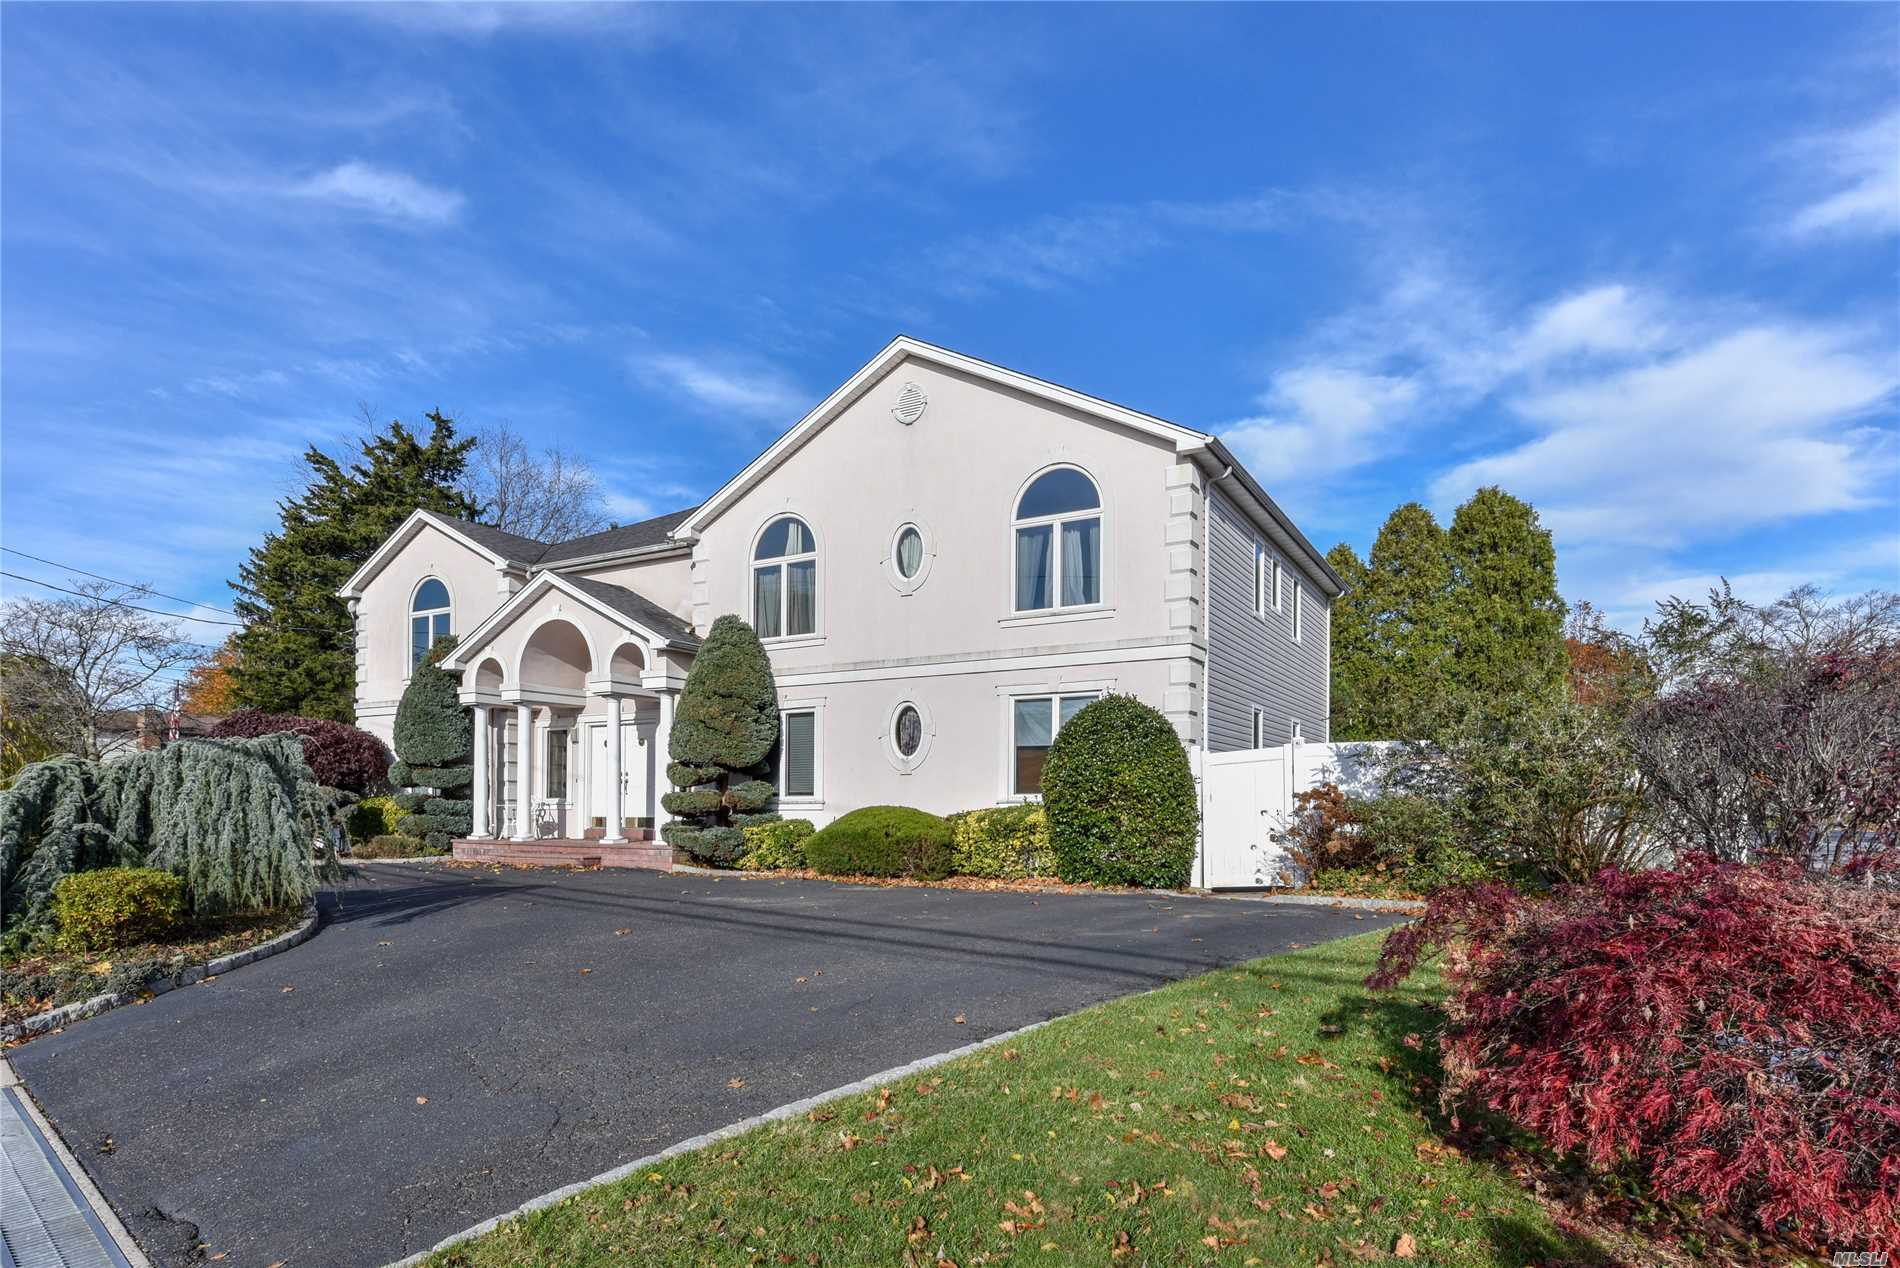 96 Southern Pkwy Plainview, NY 11803